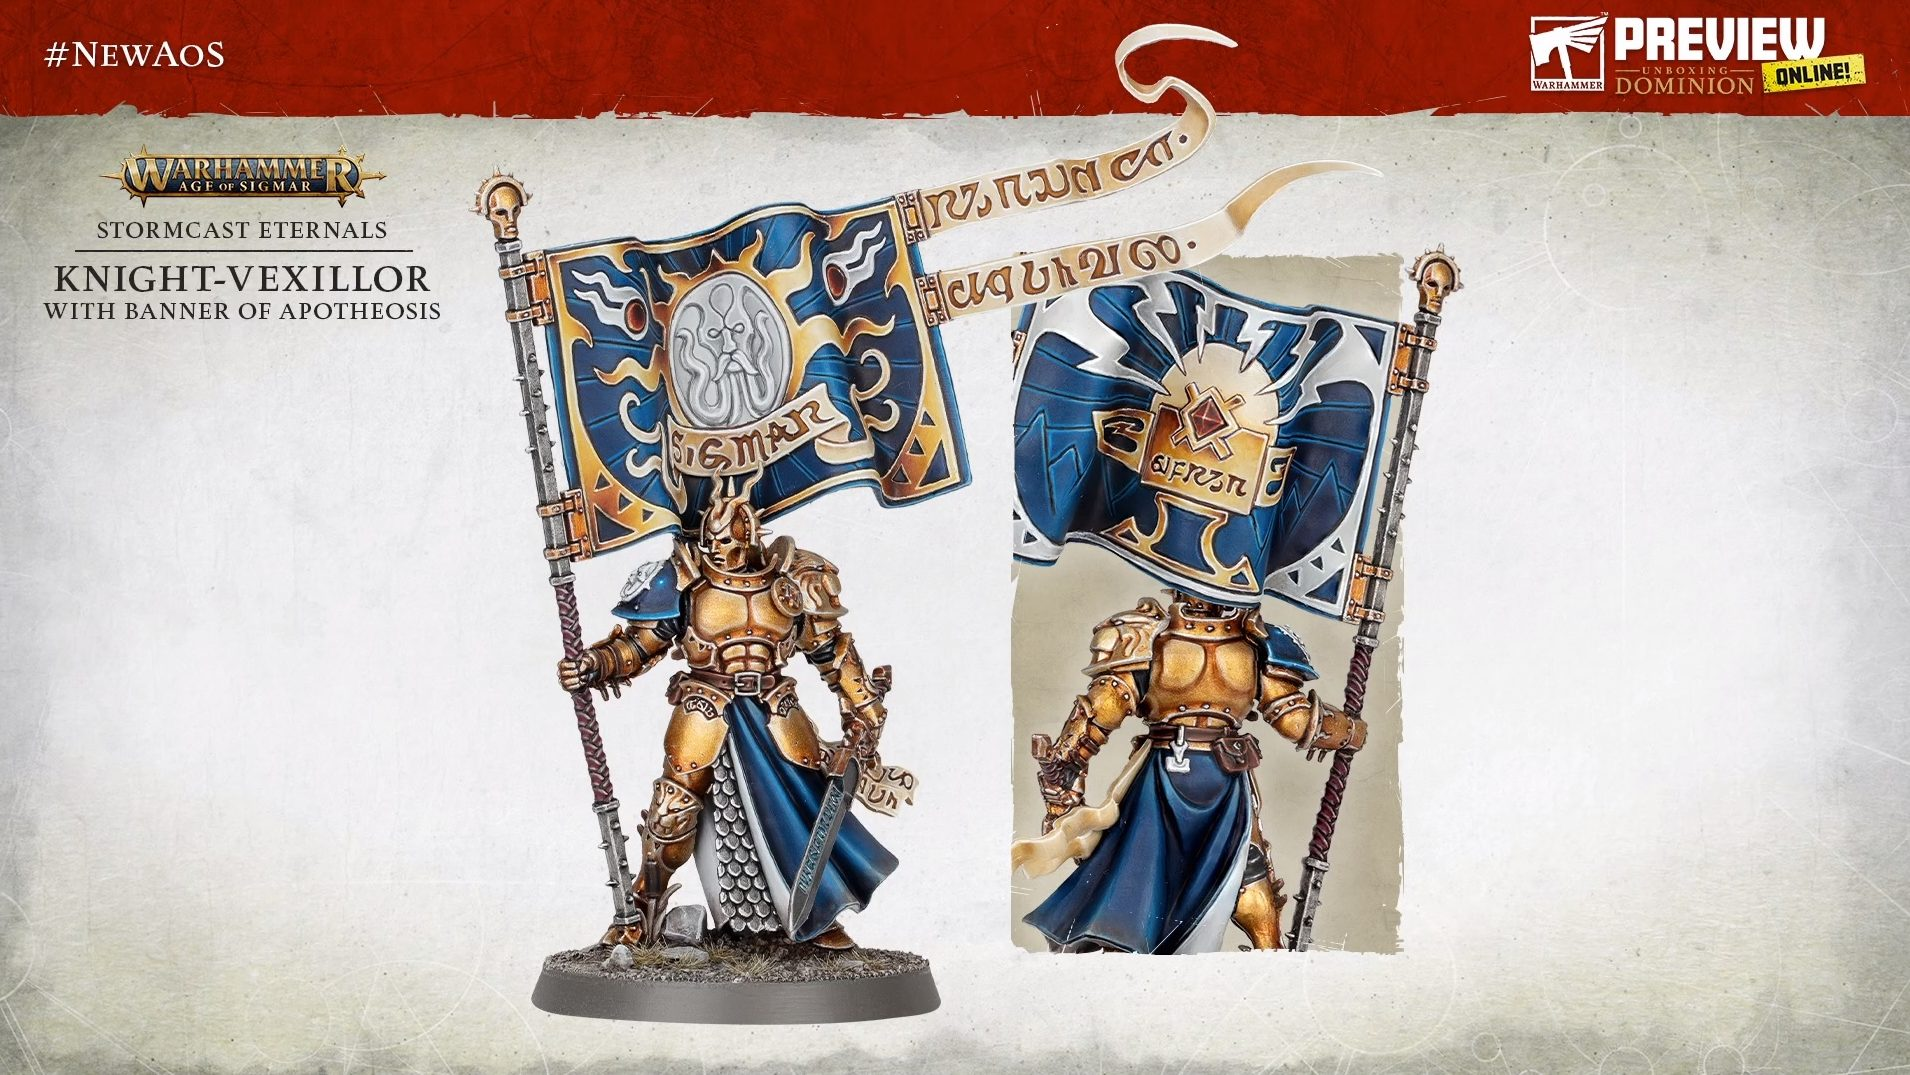 Knight-Vexillor With Banner Of Apotheosis - Warhammer Age Of Sigmar